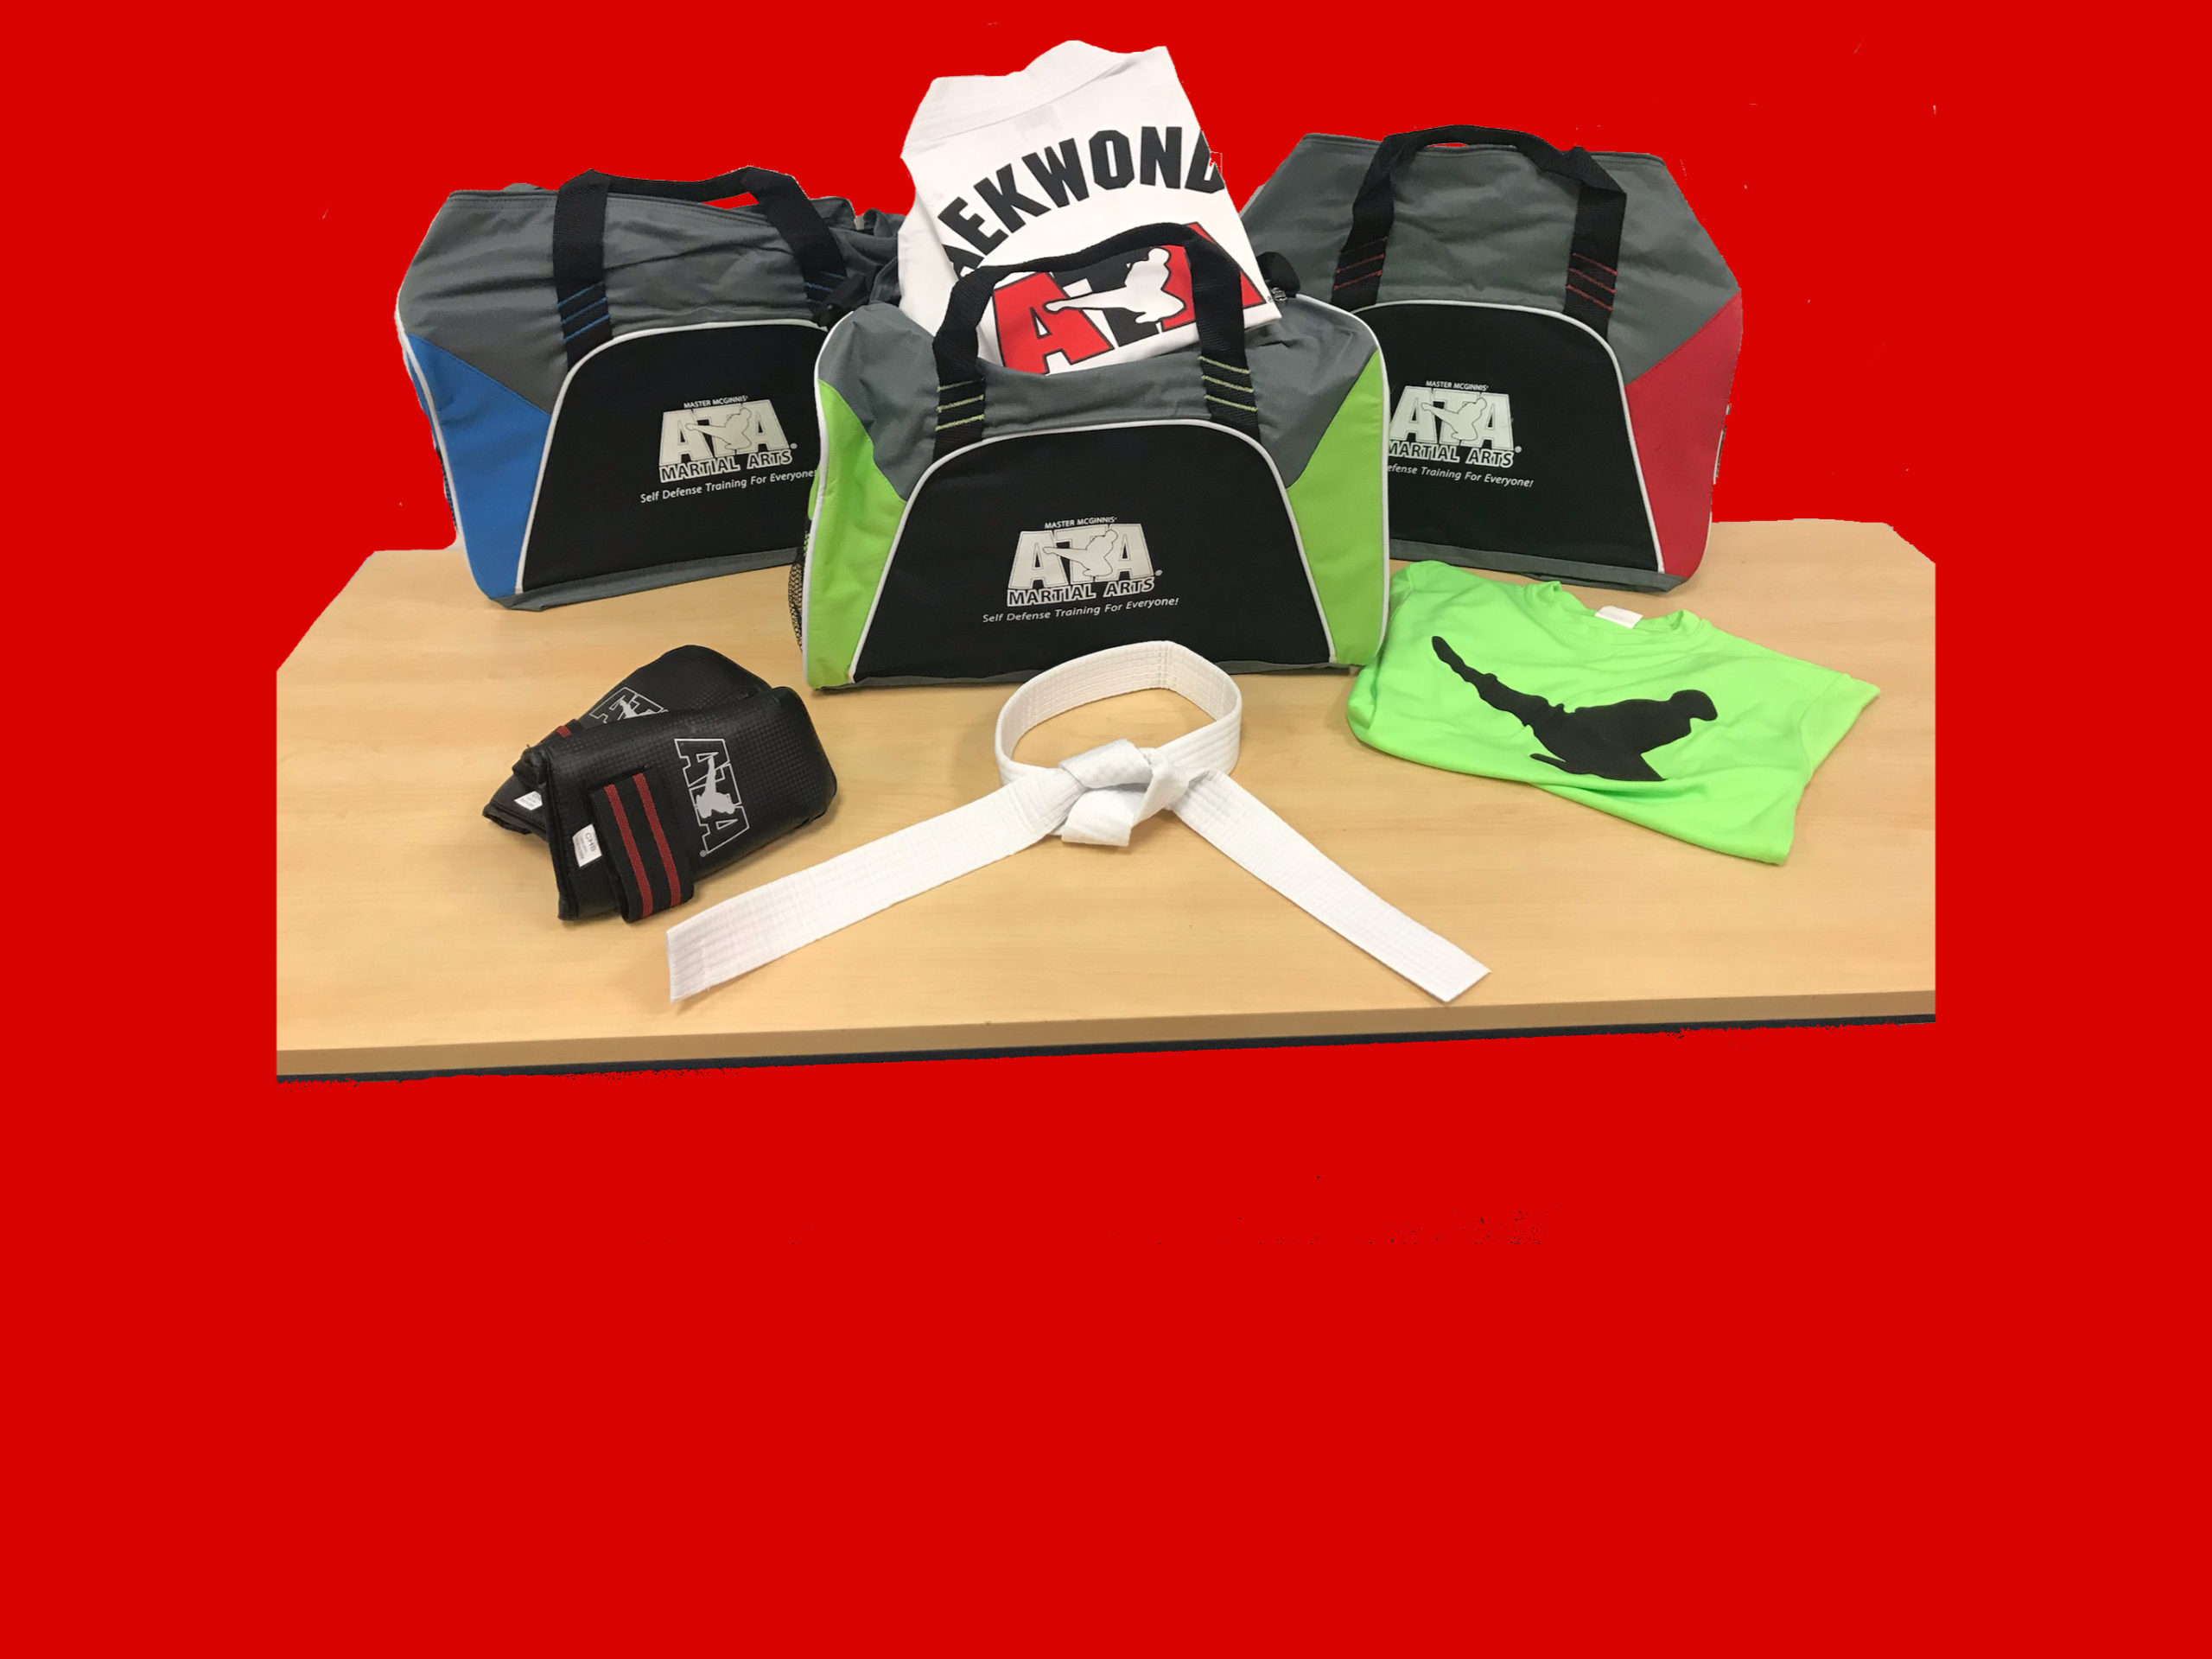 Uniform, Gloves, T-Shirt, & Gym Bag